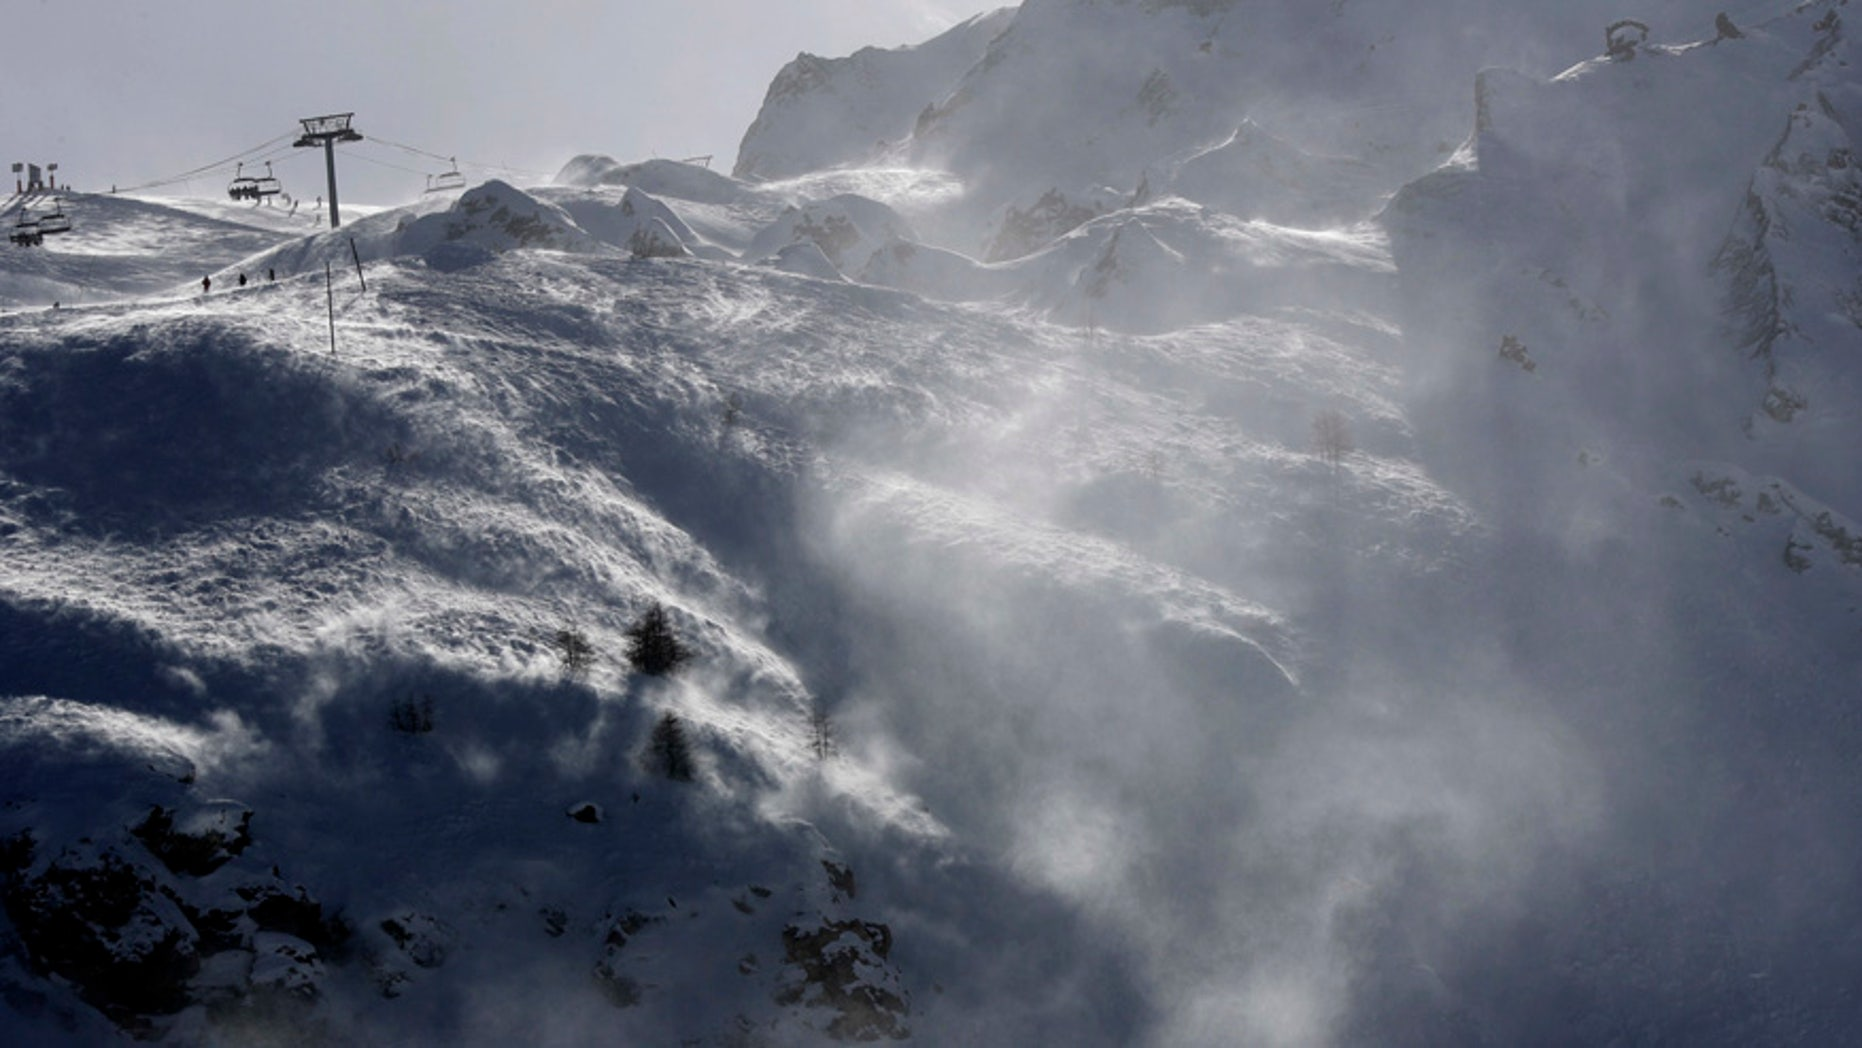 FILE - This Feb. 14, 2017 file photo shows the Lavachet Wall at the Tignes ski resort, French Alps. French officials say an avalanche has struck the Alpine ski resort of Tignes Tuesday March 7, 2017, and rescue services have launched a search. (AP Photo/Luca Bruno, File)